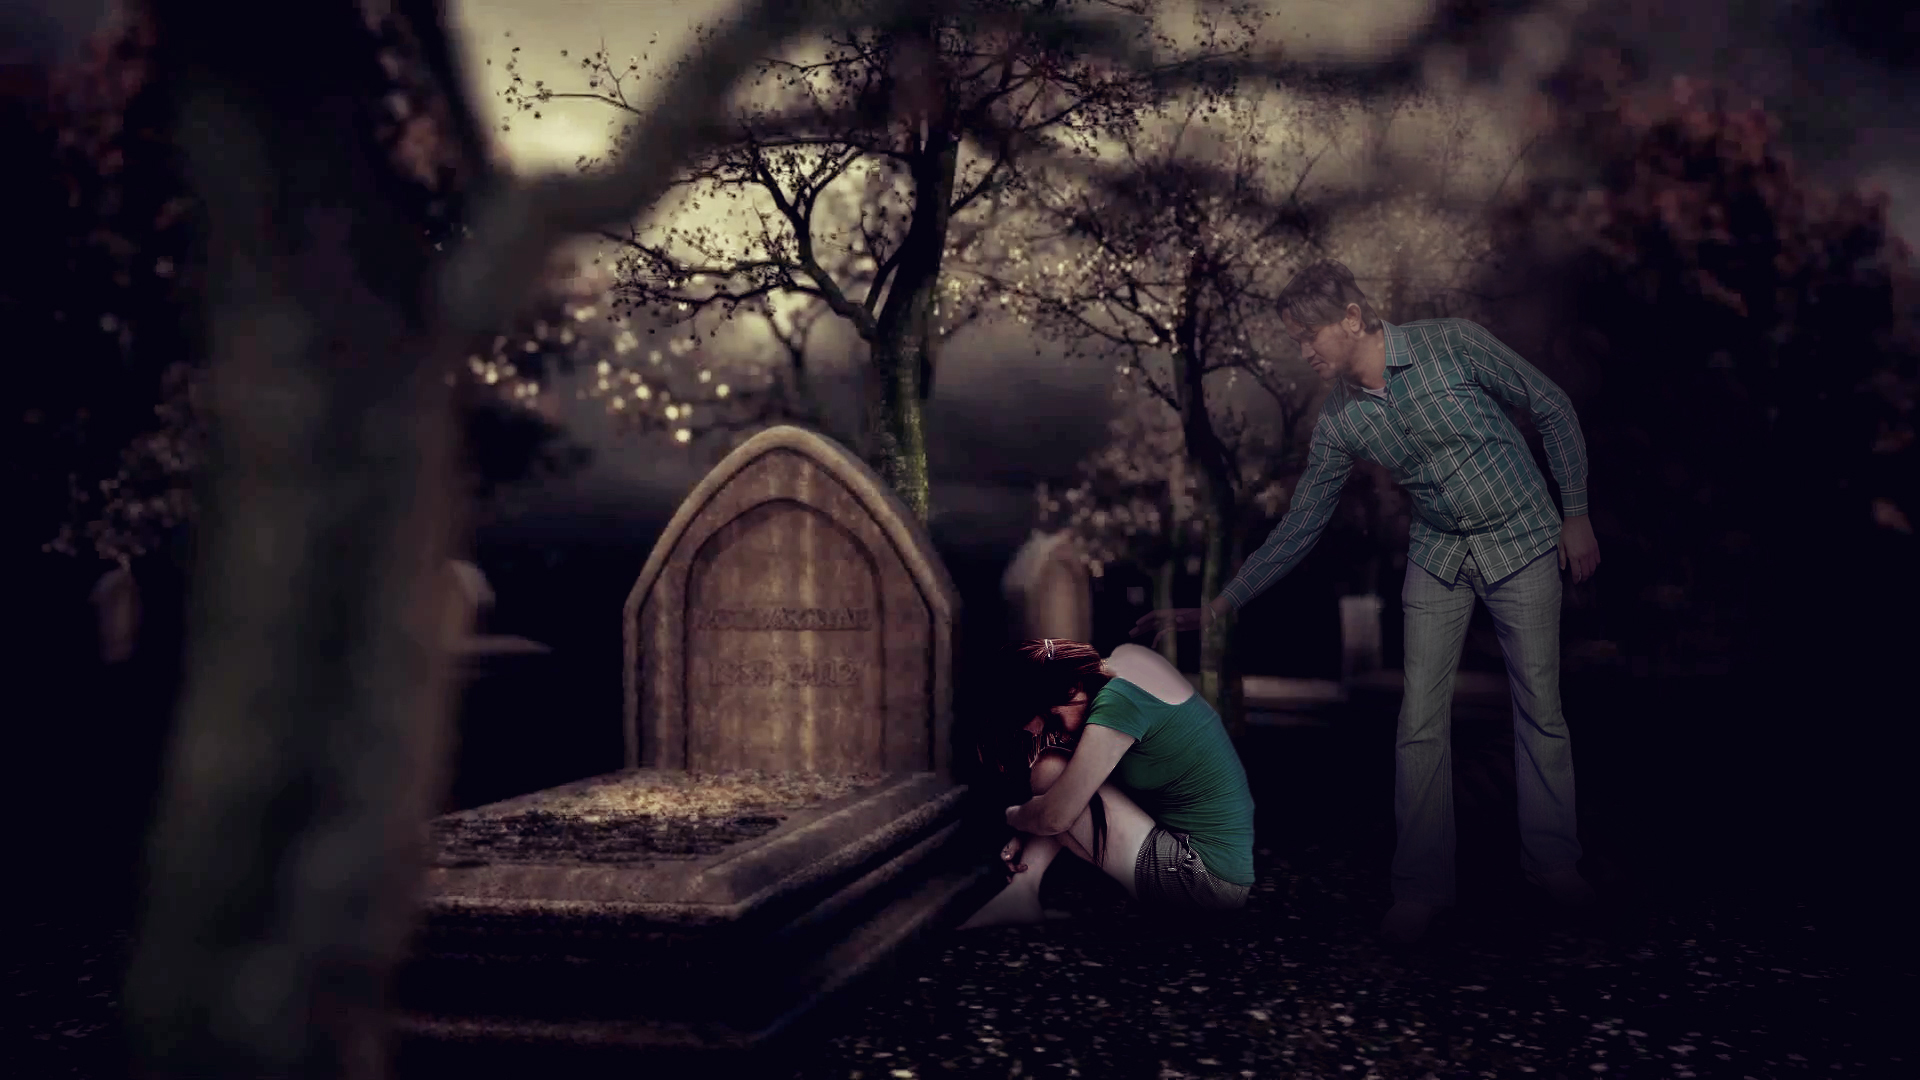 Sad Love Boy And Girl Wallpaper Hd 21 Brilliant Photo Manipulations Wallpaper Amazing